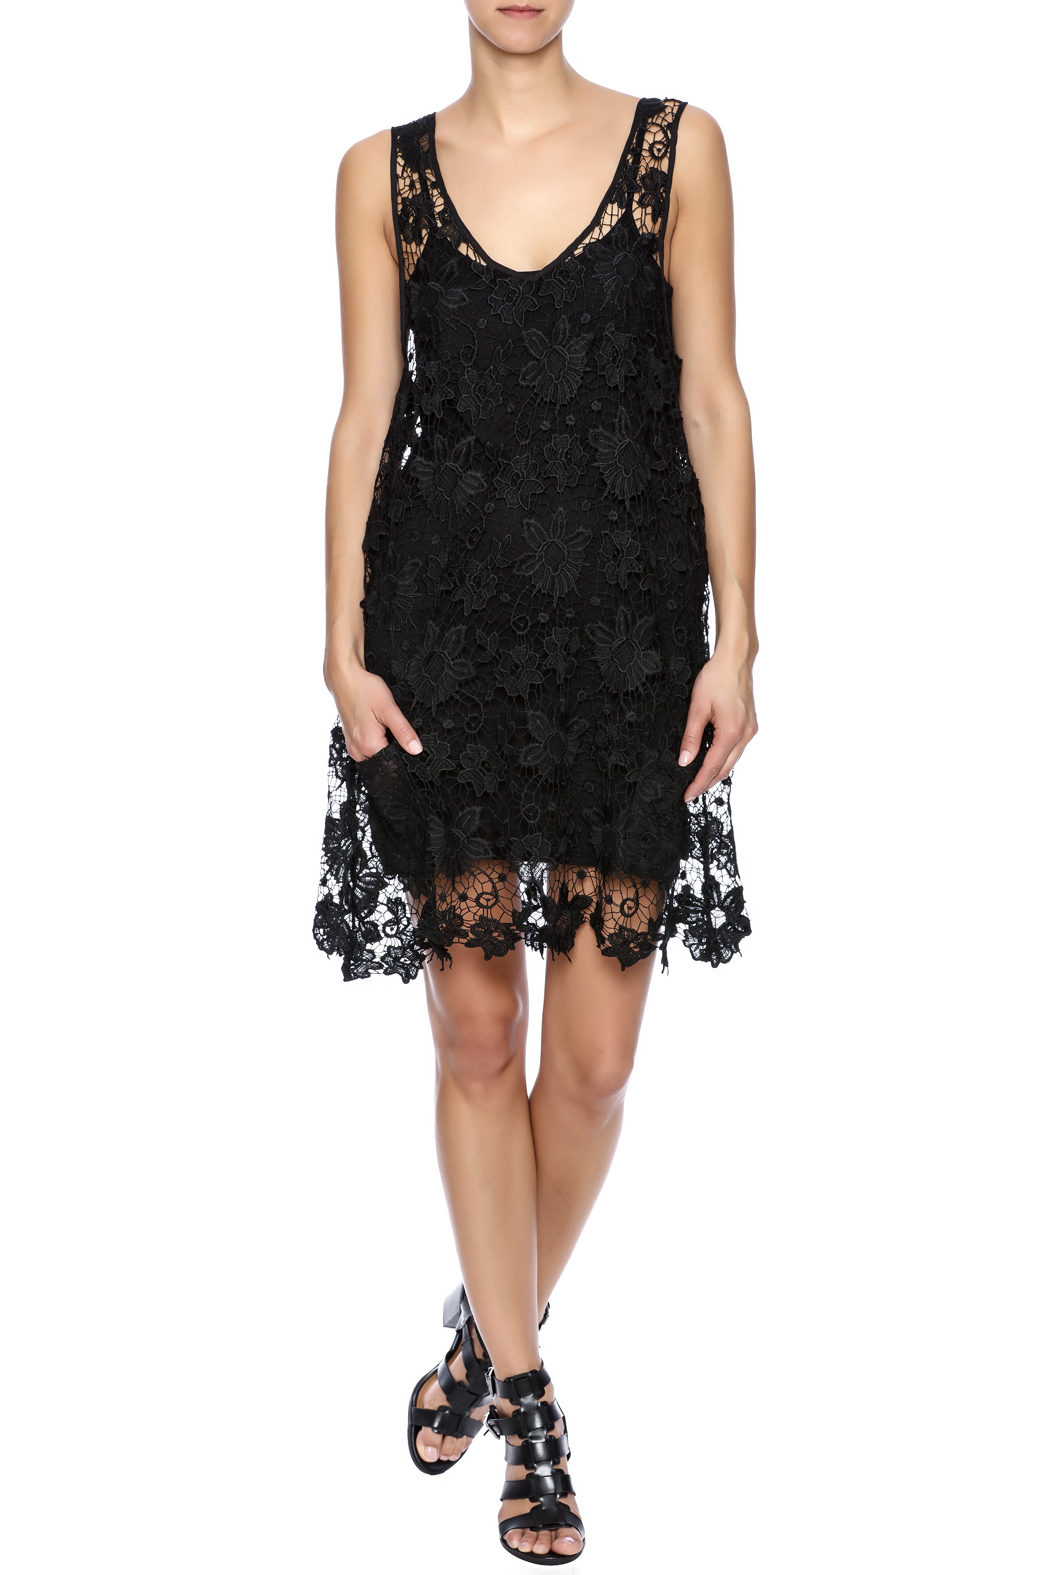 Two's Company Black Lace Dress - Front Full Image